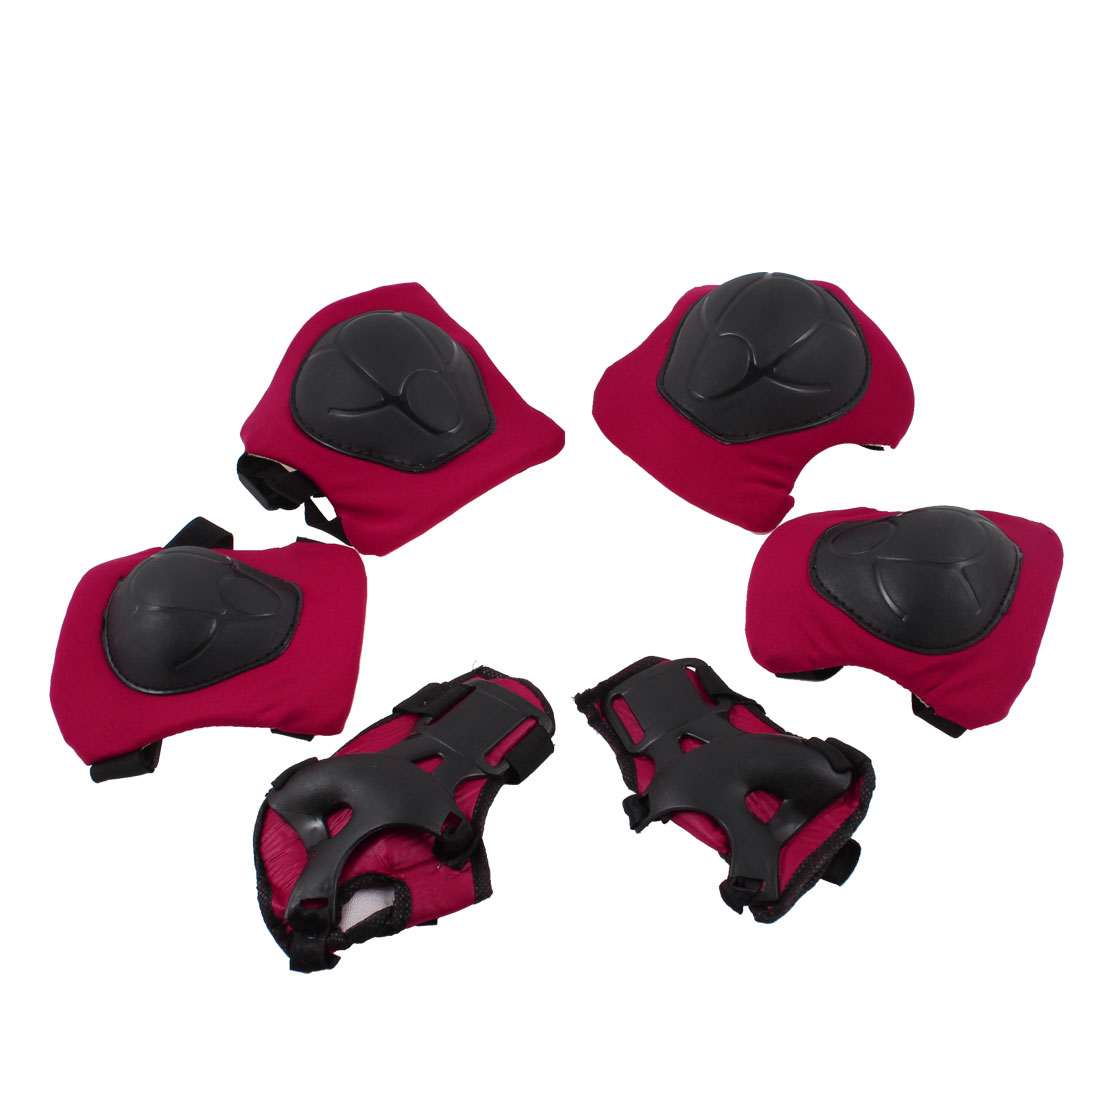 Adult-Skate-Black-Plastic-Pads-Wrist-Elbow-Knee-Support-Gear-Set-Red-3-Pairs